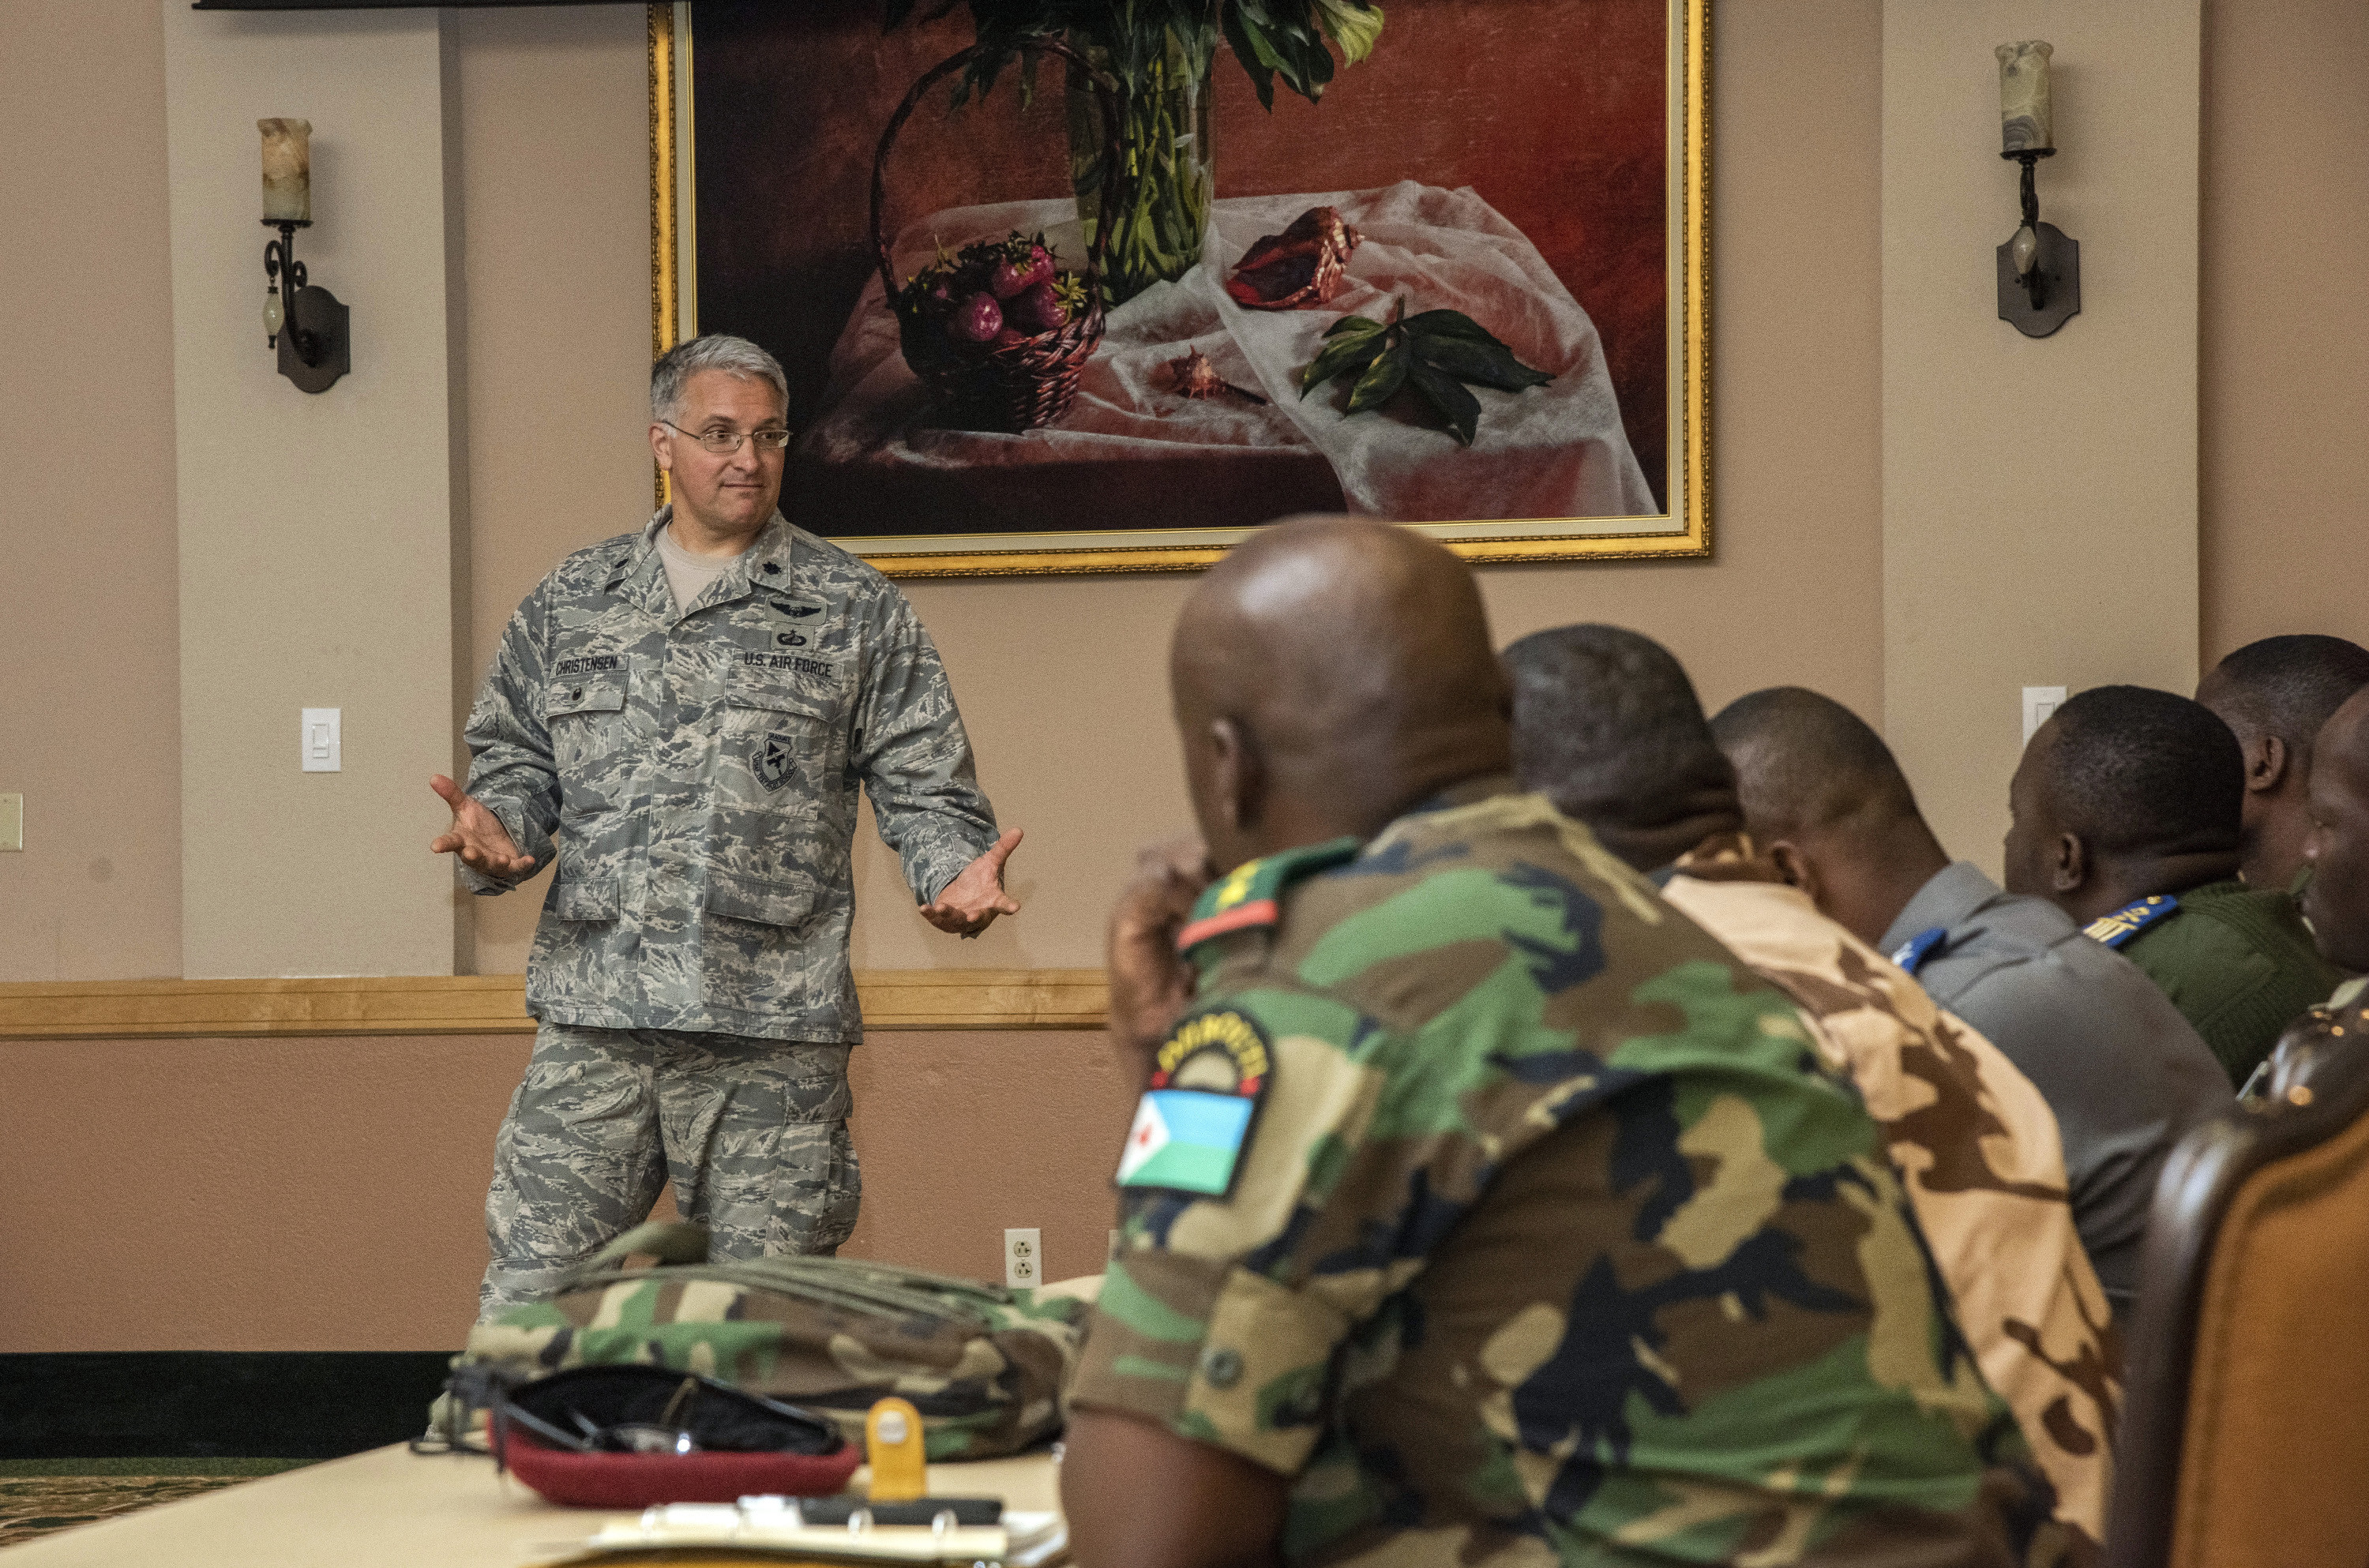 Lt. Col. Michael Christensen, an instructor at the Profession of Arms Center of Excellence, briefs a group of international offcers and senior non-commissioned officers on how to handle a vraiety of ethical dilemmas they may face as they manage people within a military organization. Introducing the participants to the programs that only the U.S. military has in place, such as the Equal Opportunity, Sexual Assault Prevention and Violence Prevention and providing them with the opportunity to think critically about how to handle situations in these areas was one aspect of thier five-day visit to U.S. Air Force and Army installations in the San Antonio area. (U.S. Air Force photo by Johnny Saldivar)